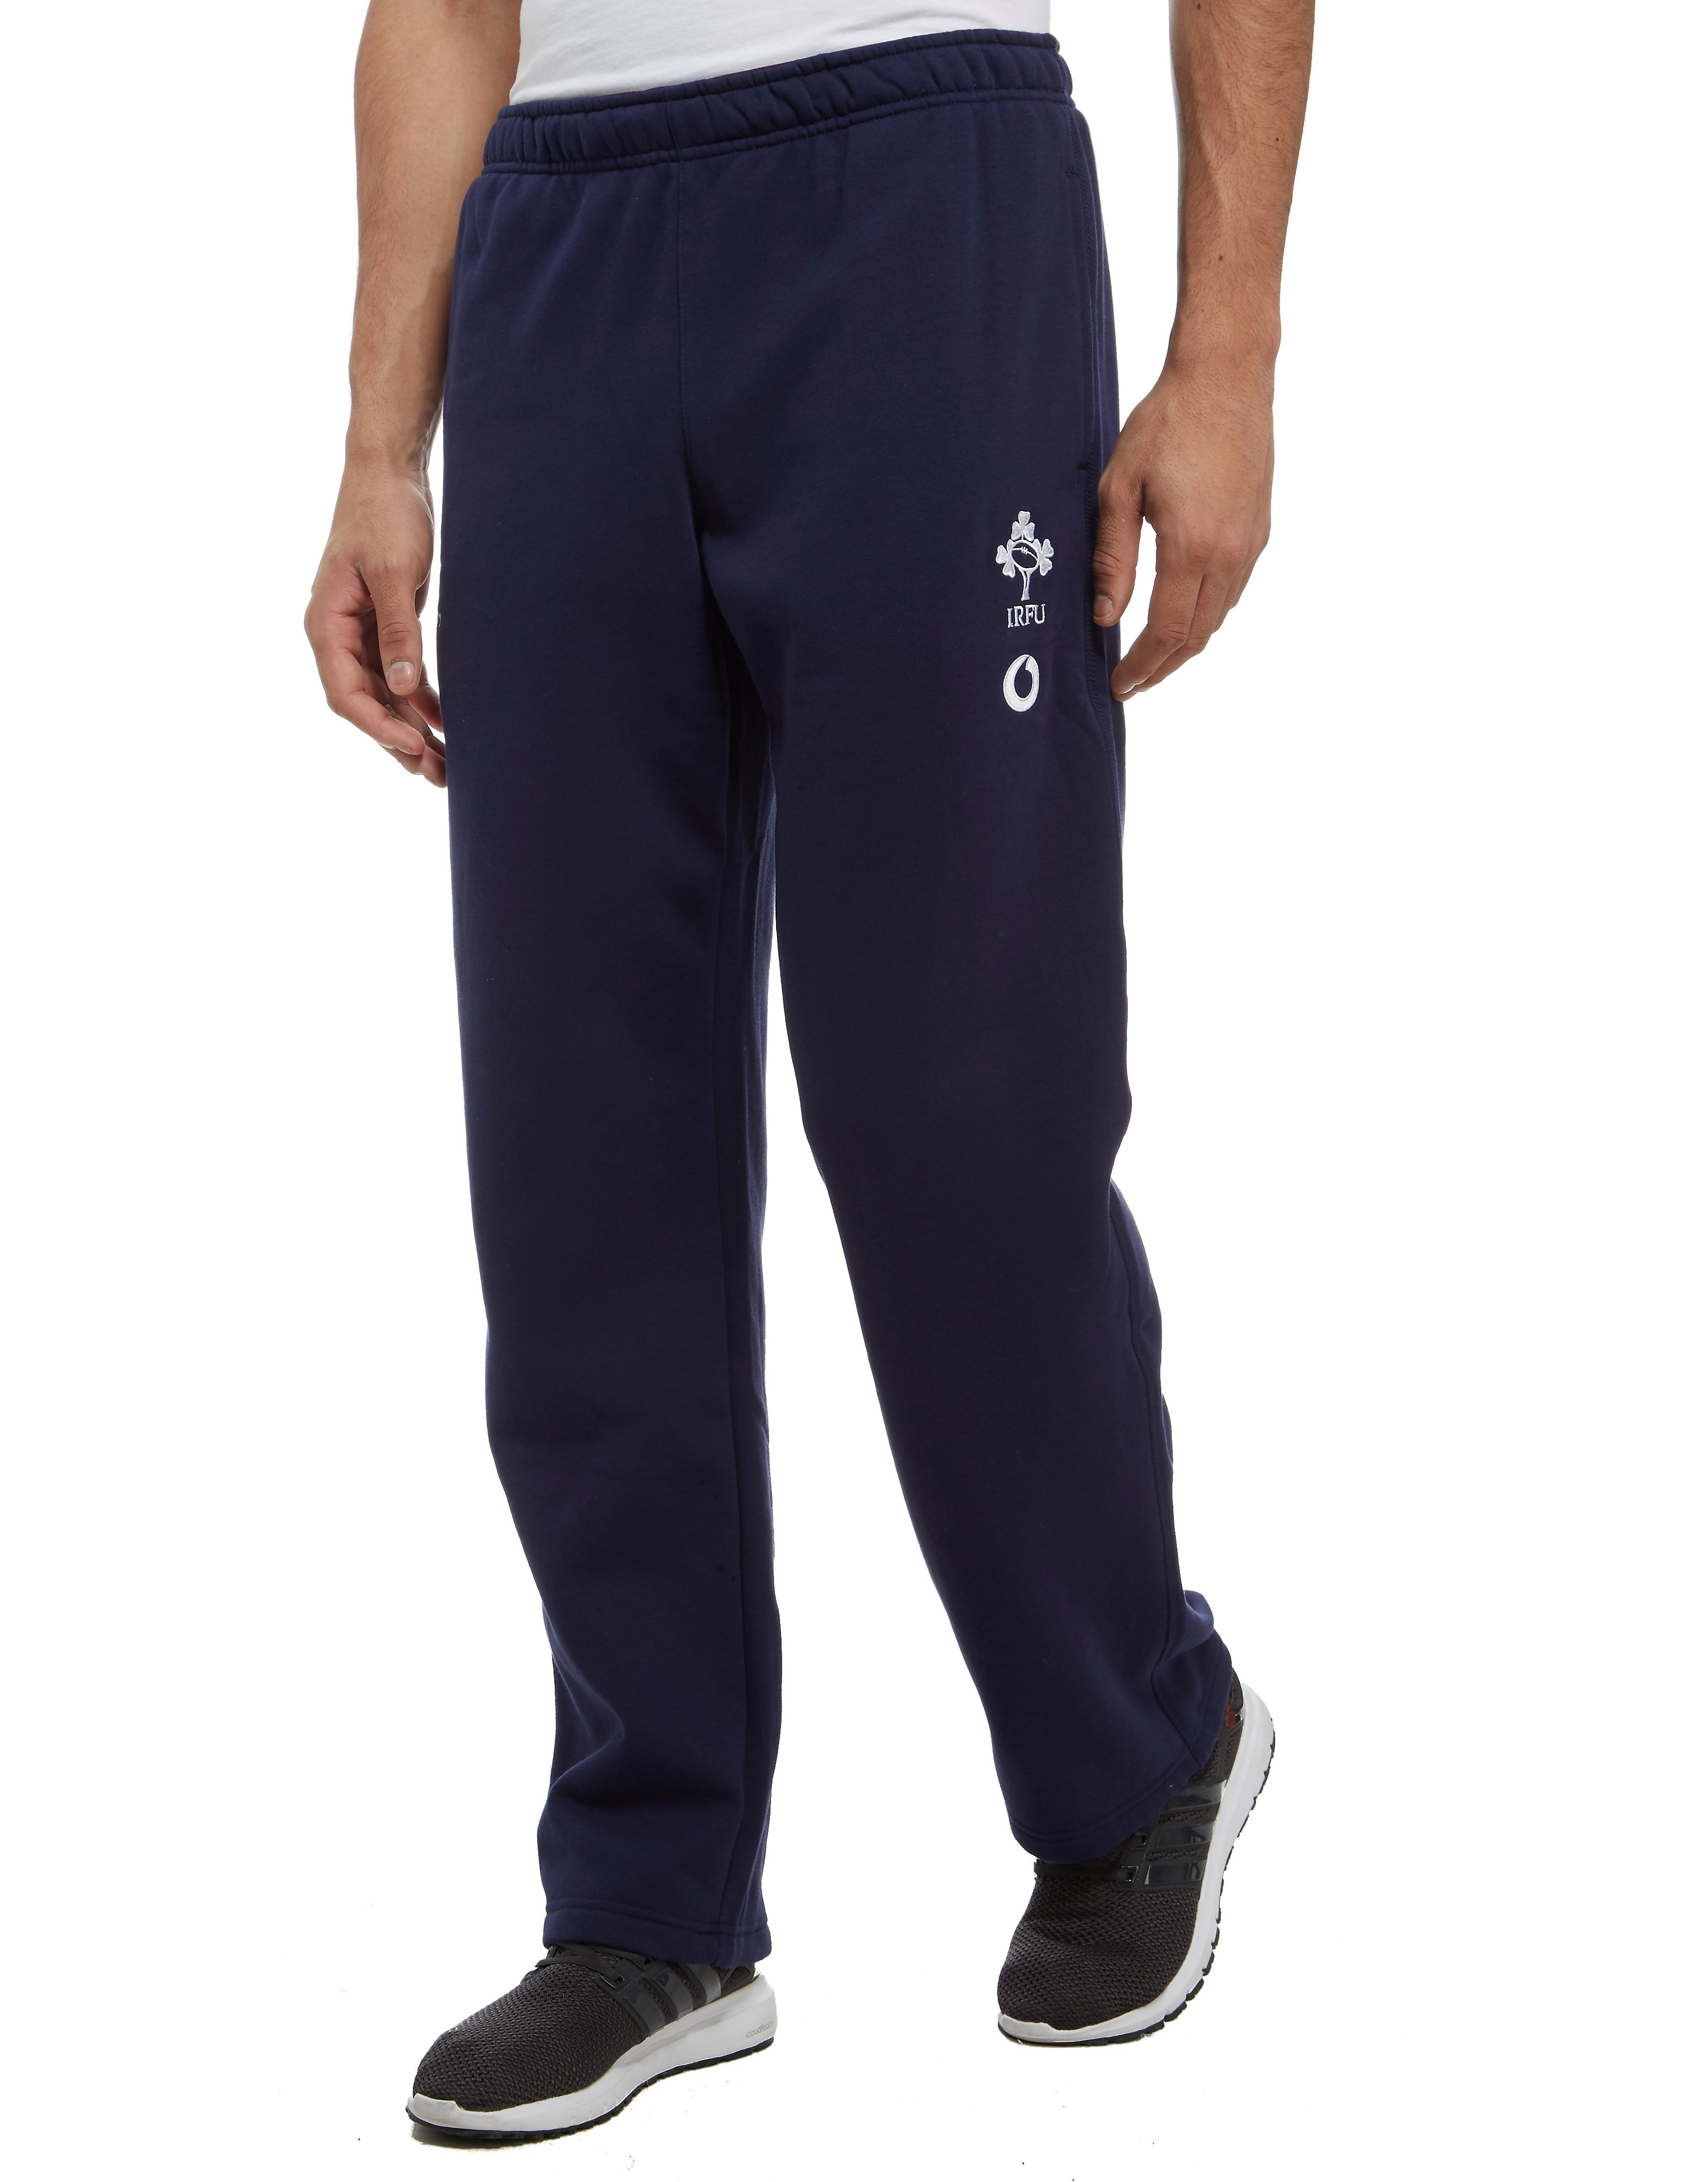 Canterbury Ireland RFU Fleece Pants